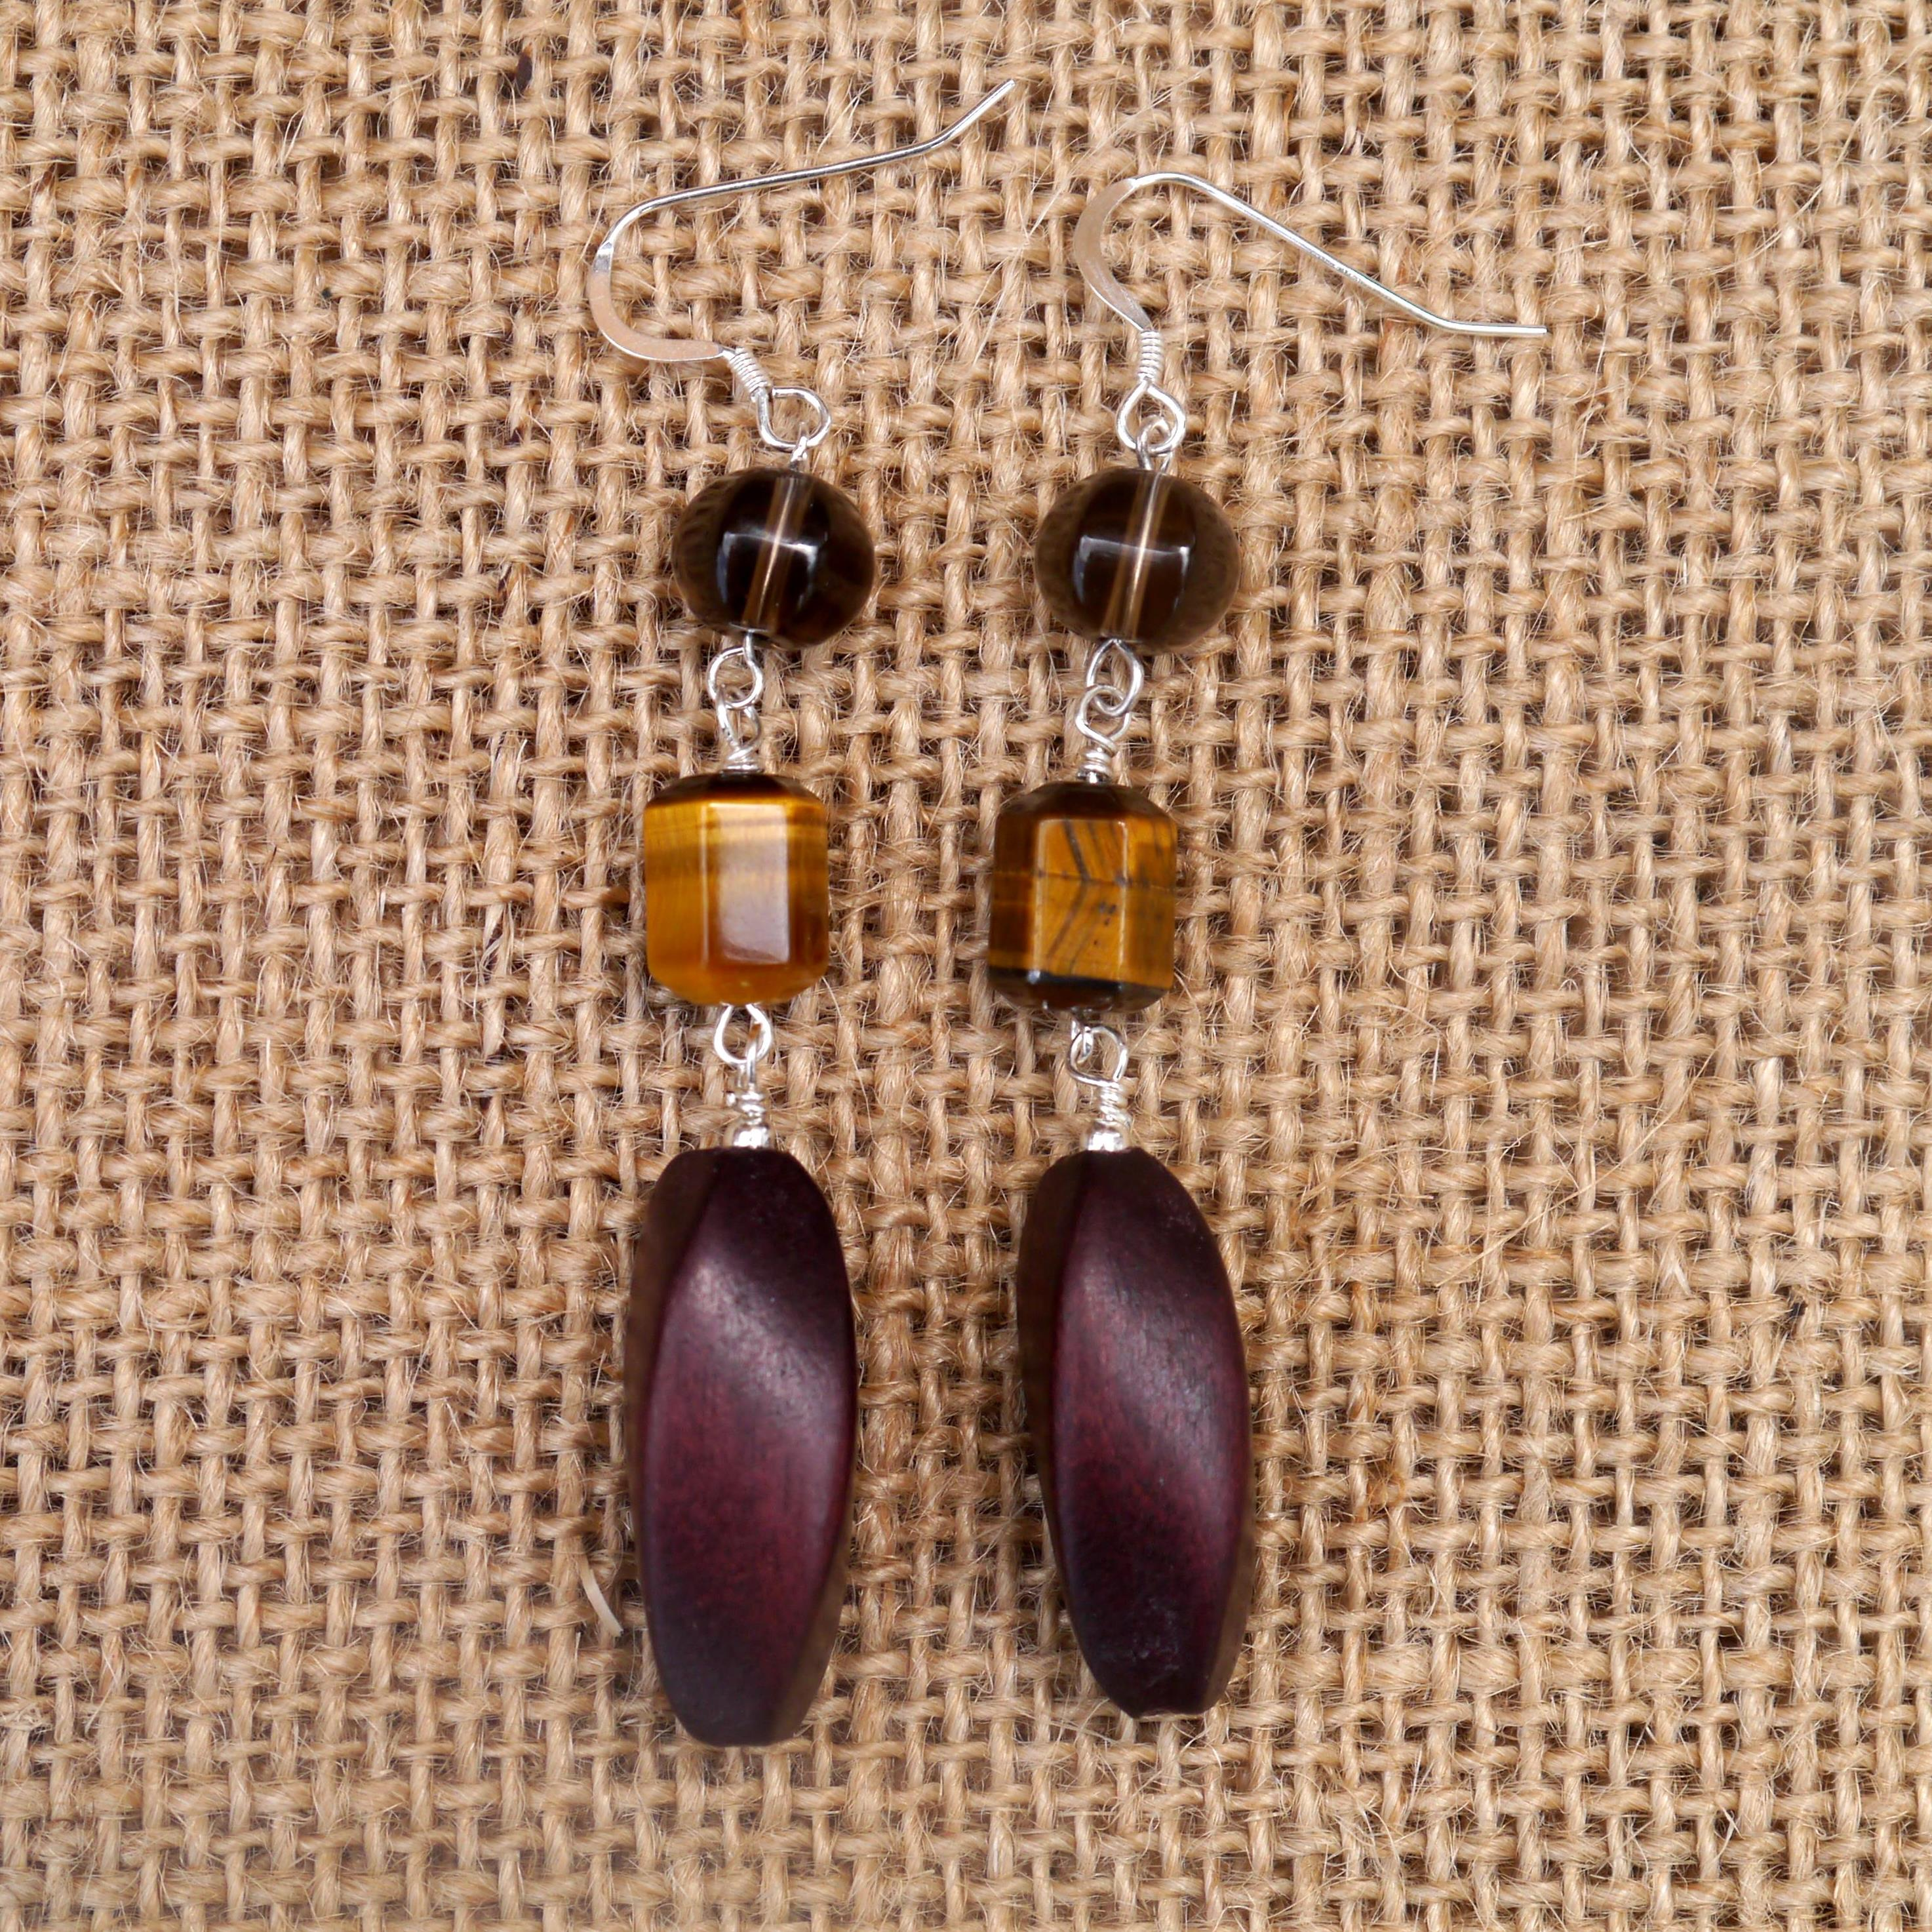 Smoky Quartz & Tigers eye